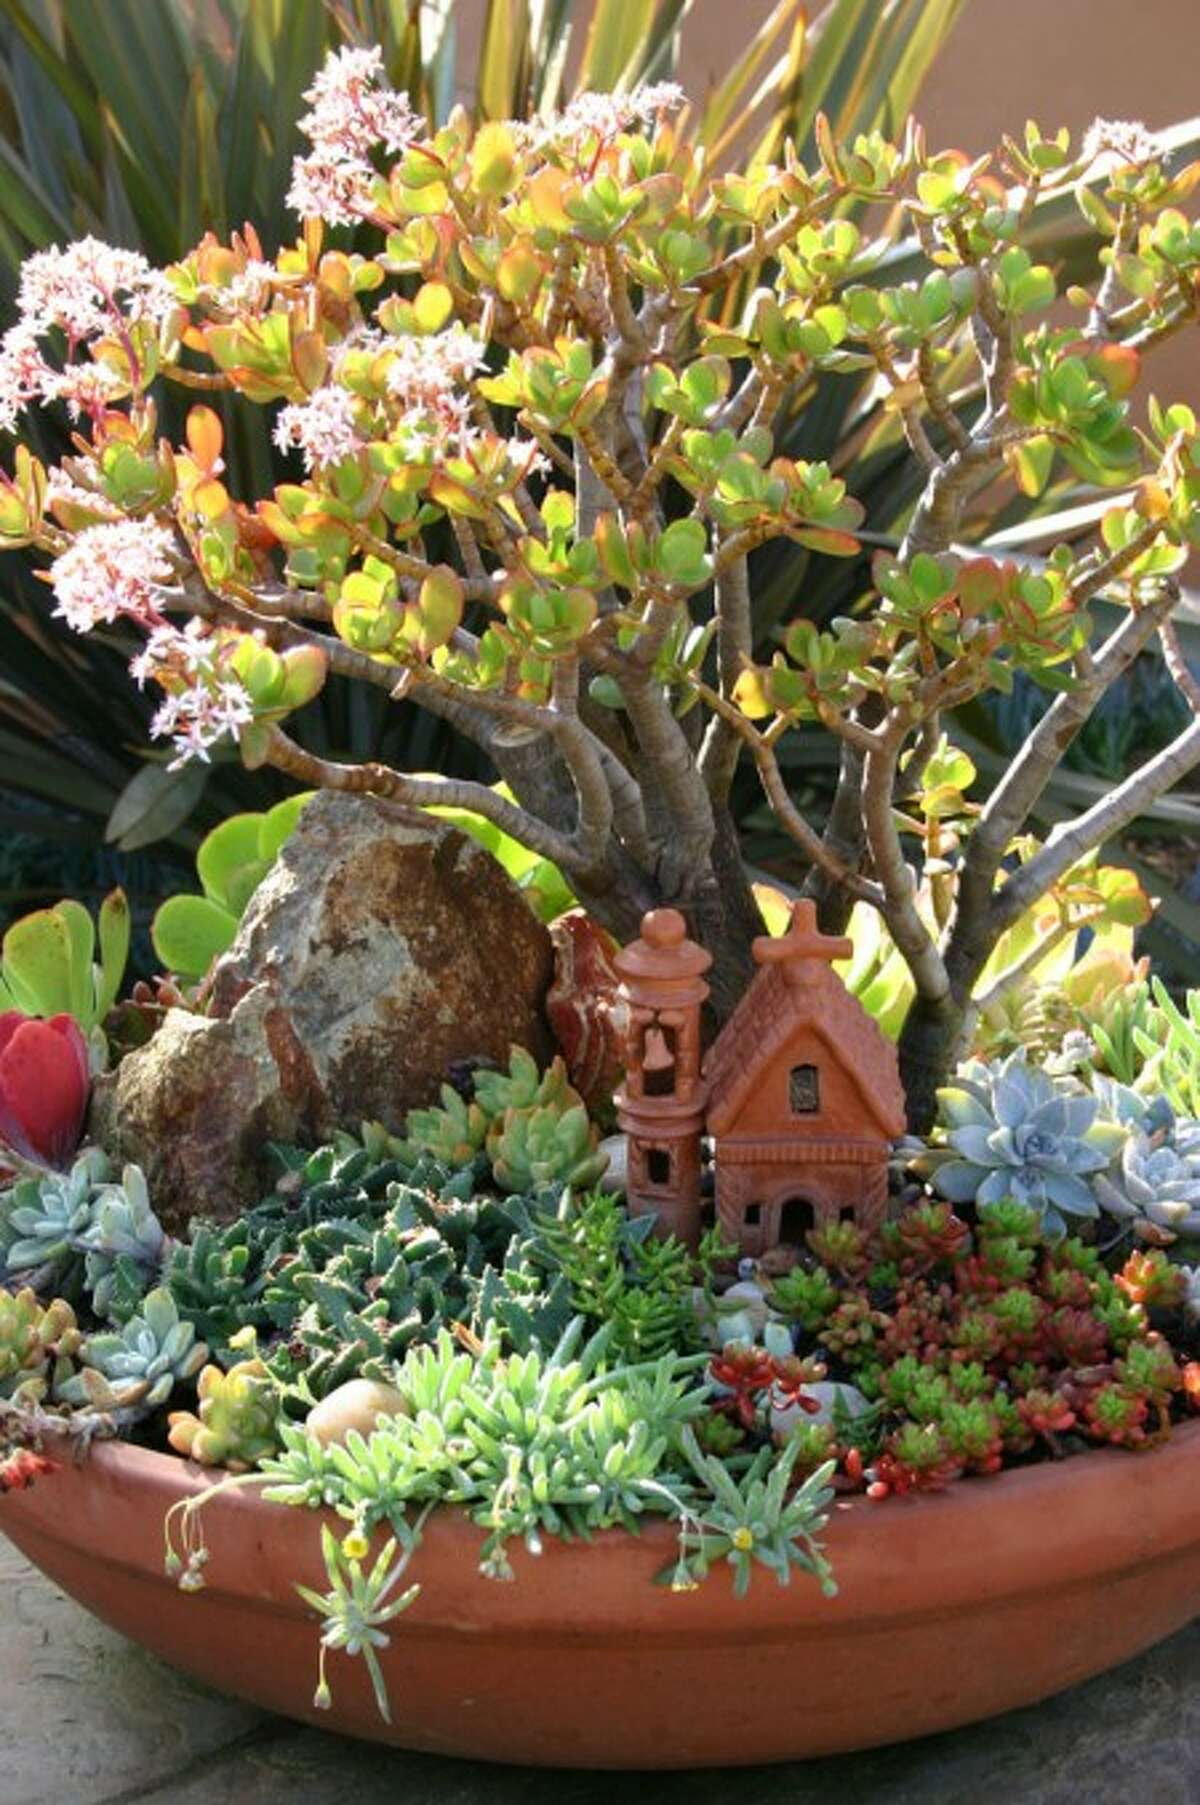 This photo released by Debra Lee Baldwin shows a miniature landscape with a jade plant behind the tiny building is in bloom, sedums and othonna fill the foreground, and a rock with interesting striations suggests a mountain. Design by Suzy Schaefer. (AP Photo/Debra Lee Baldwin)**NO SALES**